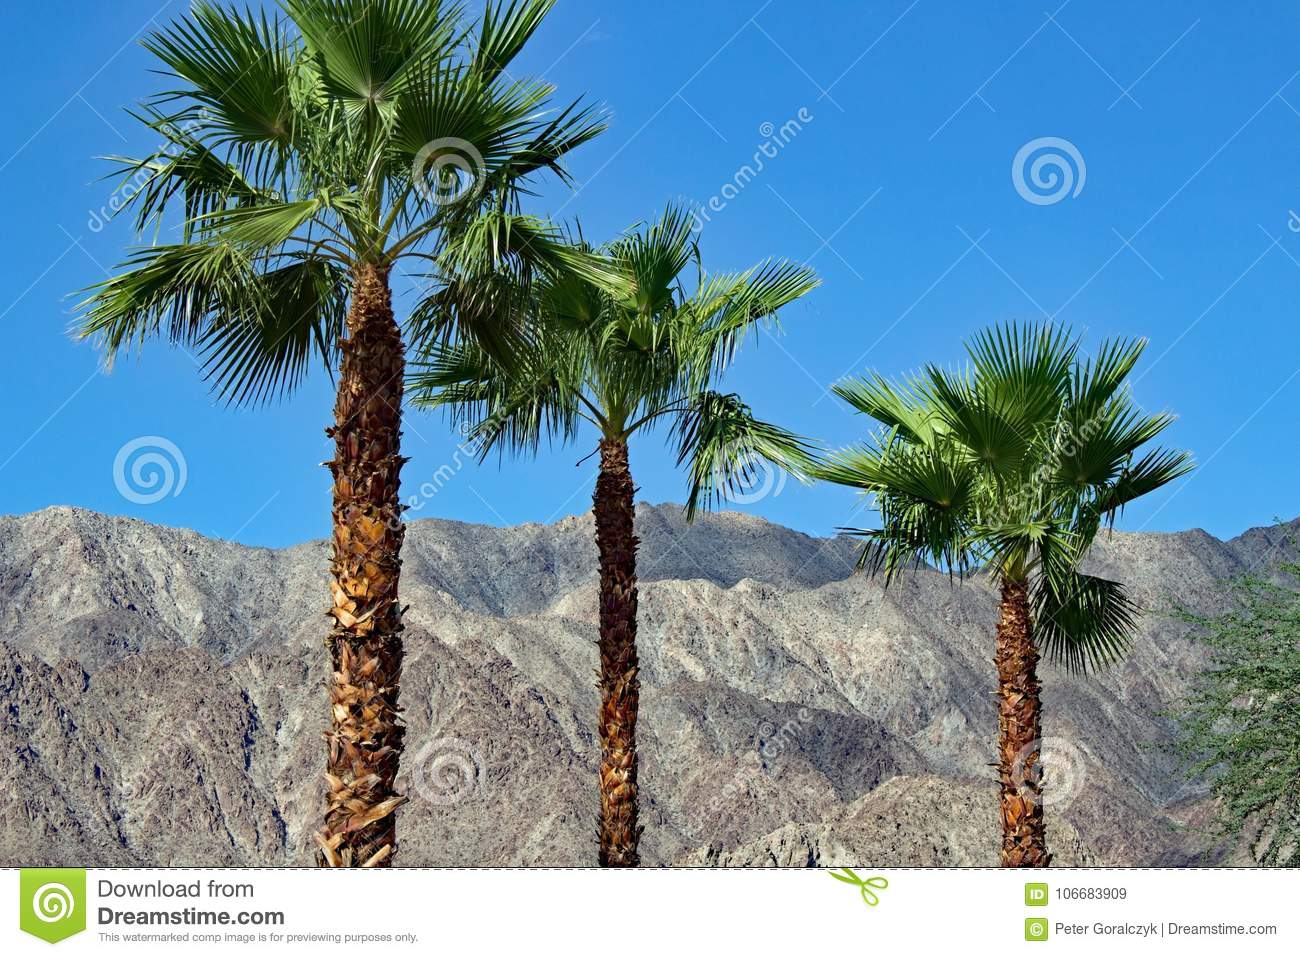 Palm trees at Palm Springs California